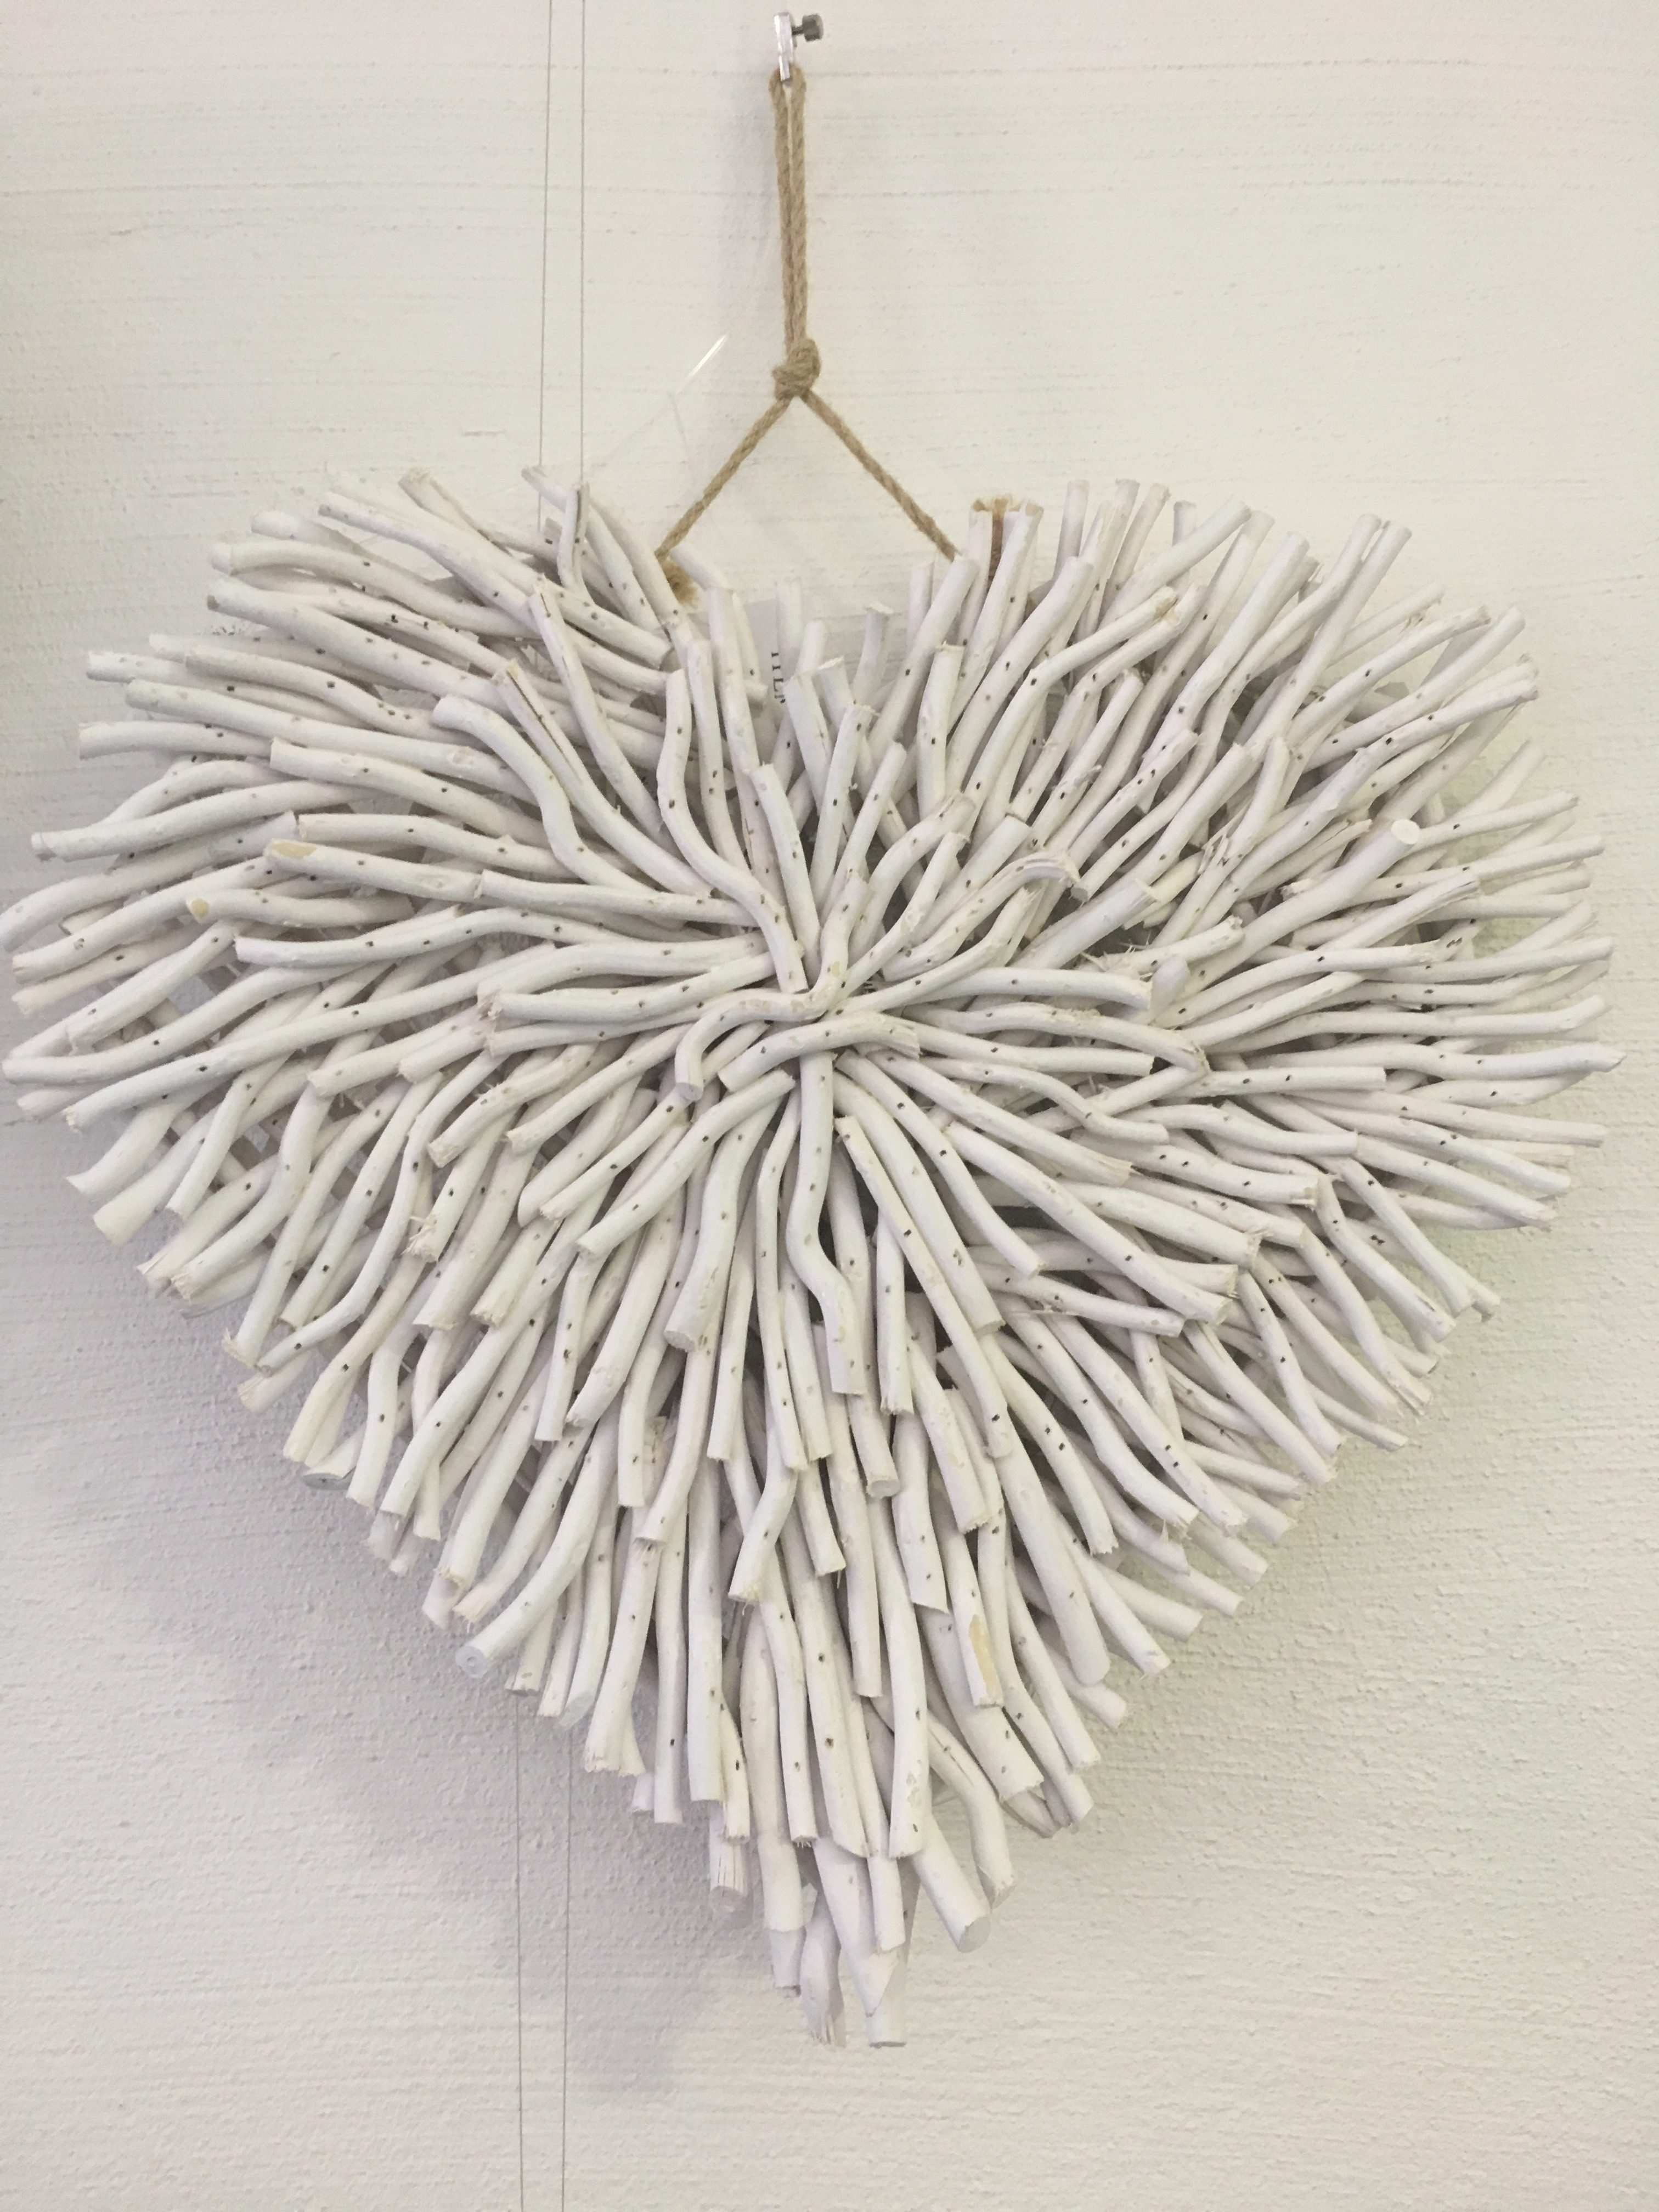 Wall Decor - Driftwood Heart White - Daydream Leisure Furniture intended for Driftwood Wall Art (Image 18 of 20)